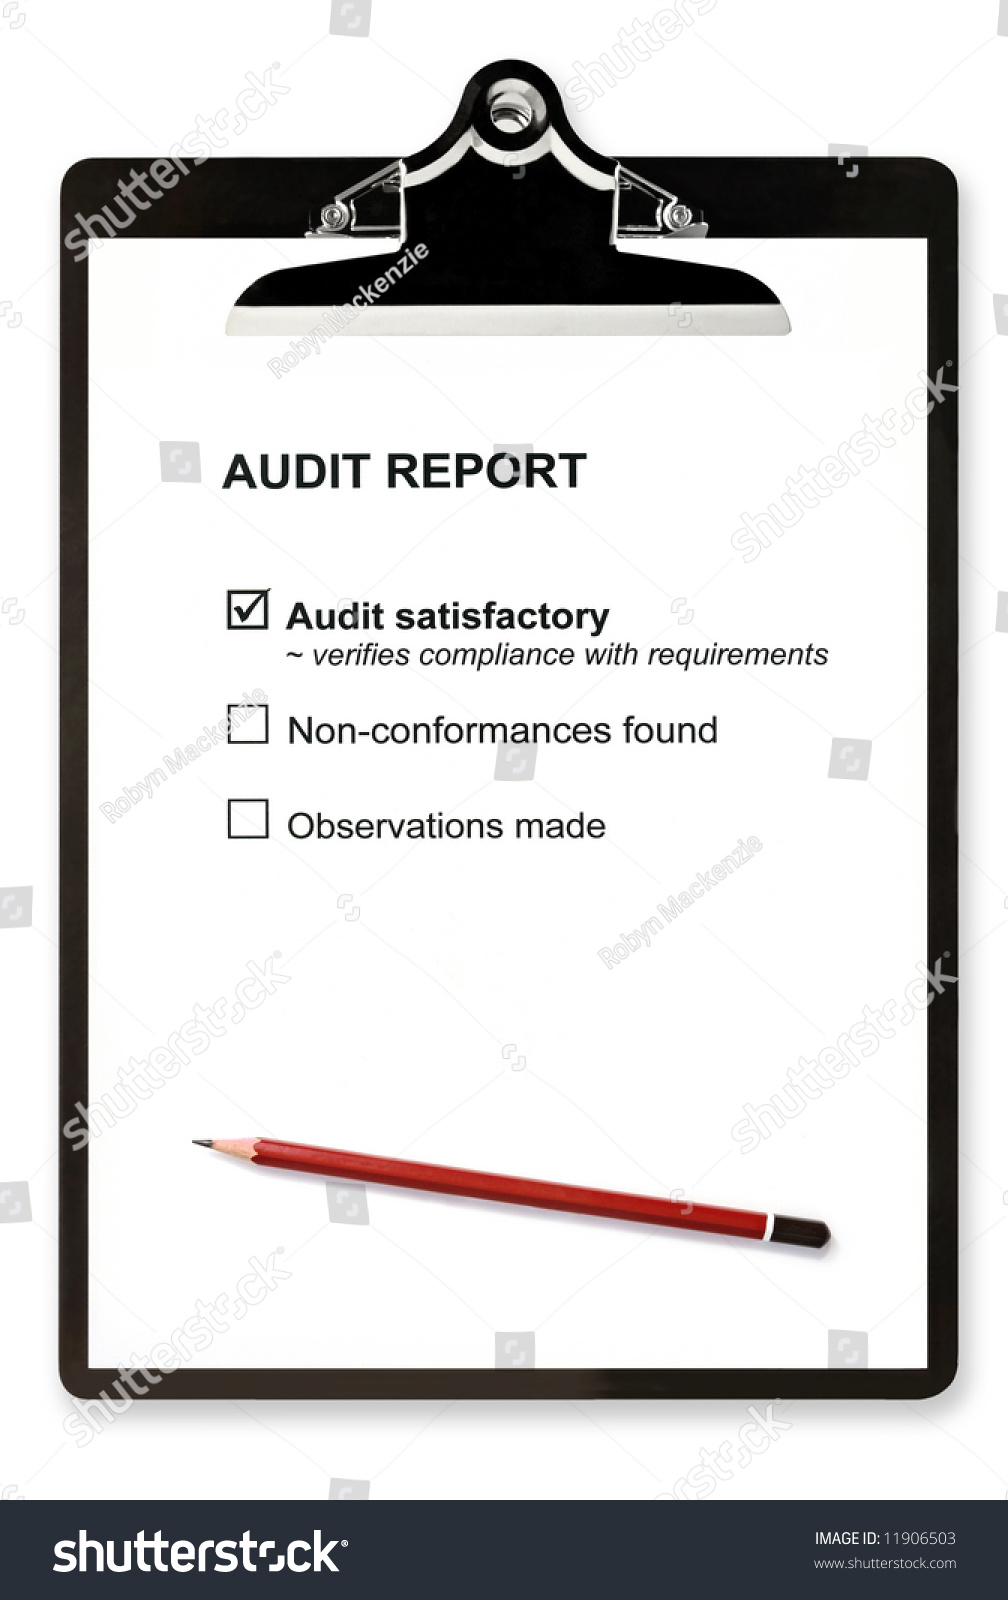 How to Write an Audit Report: 14 Steps (with Pictures ...